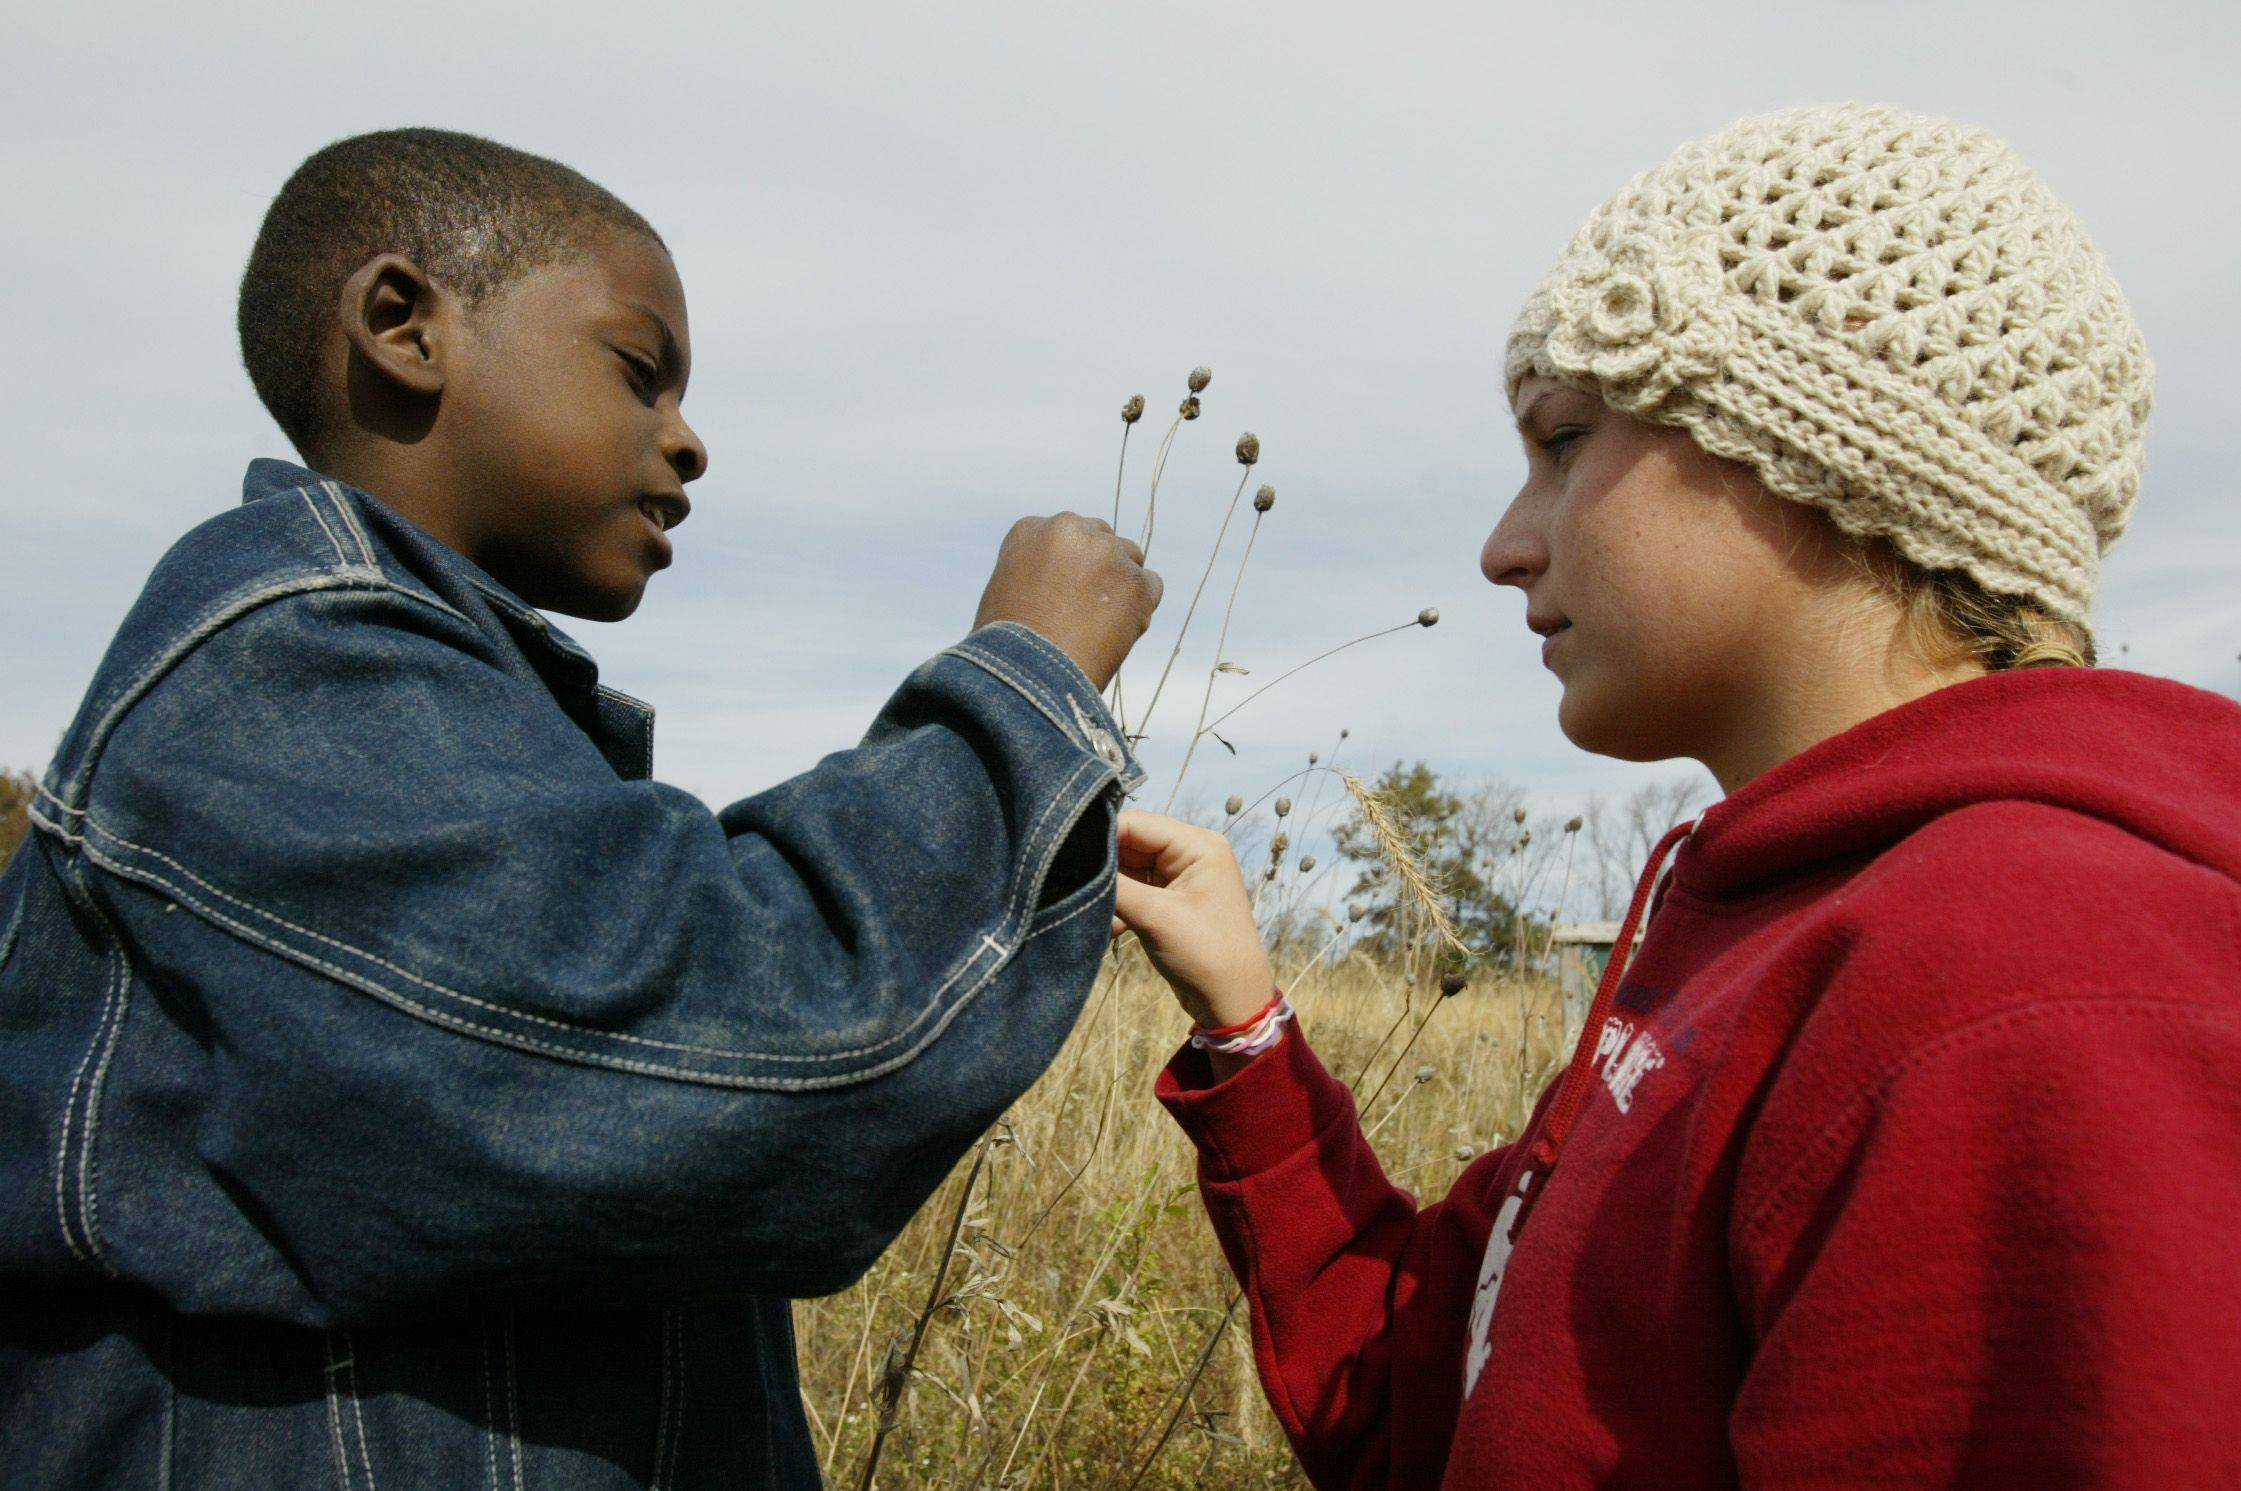 Dundee-Crown senior Claira Himmel shows Perry Elementary third-grader Keywan Riggins how to collect cone flower seeds Tuesday at Snuffy's Prairie in Carpentersville.